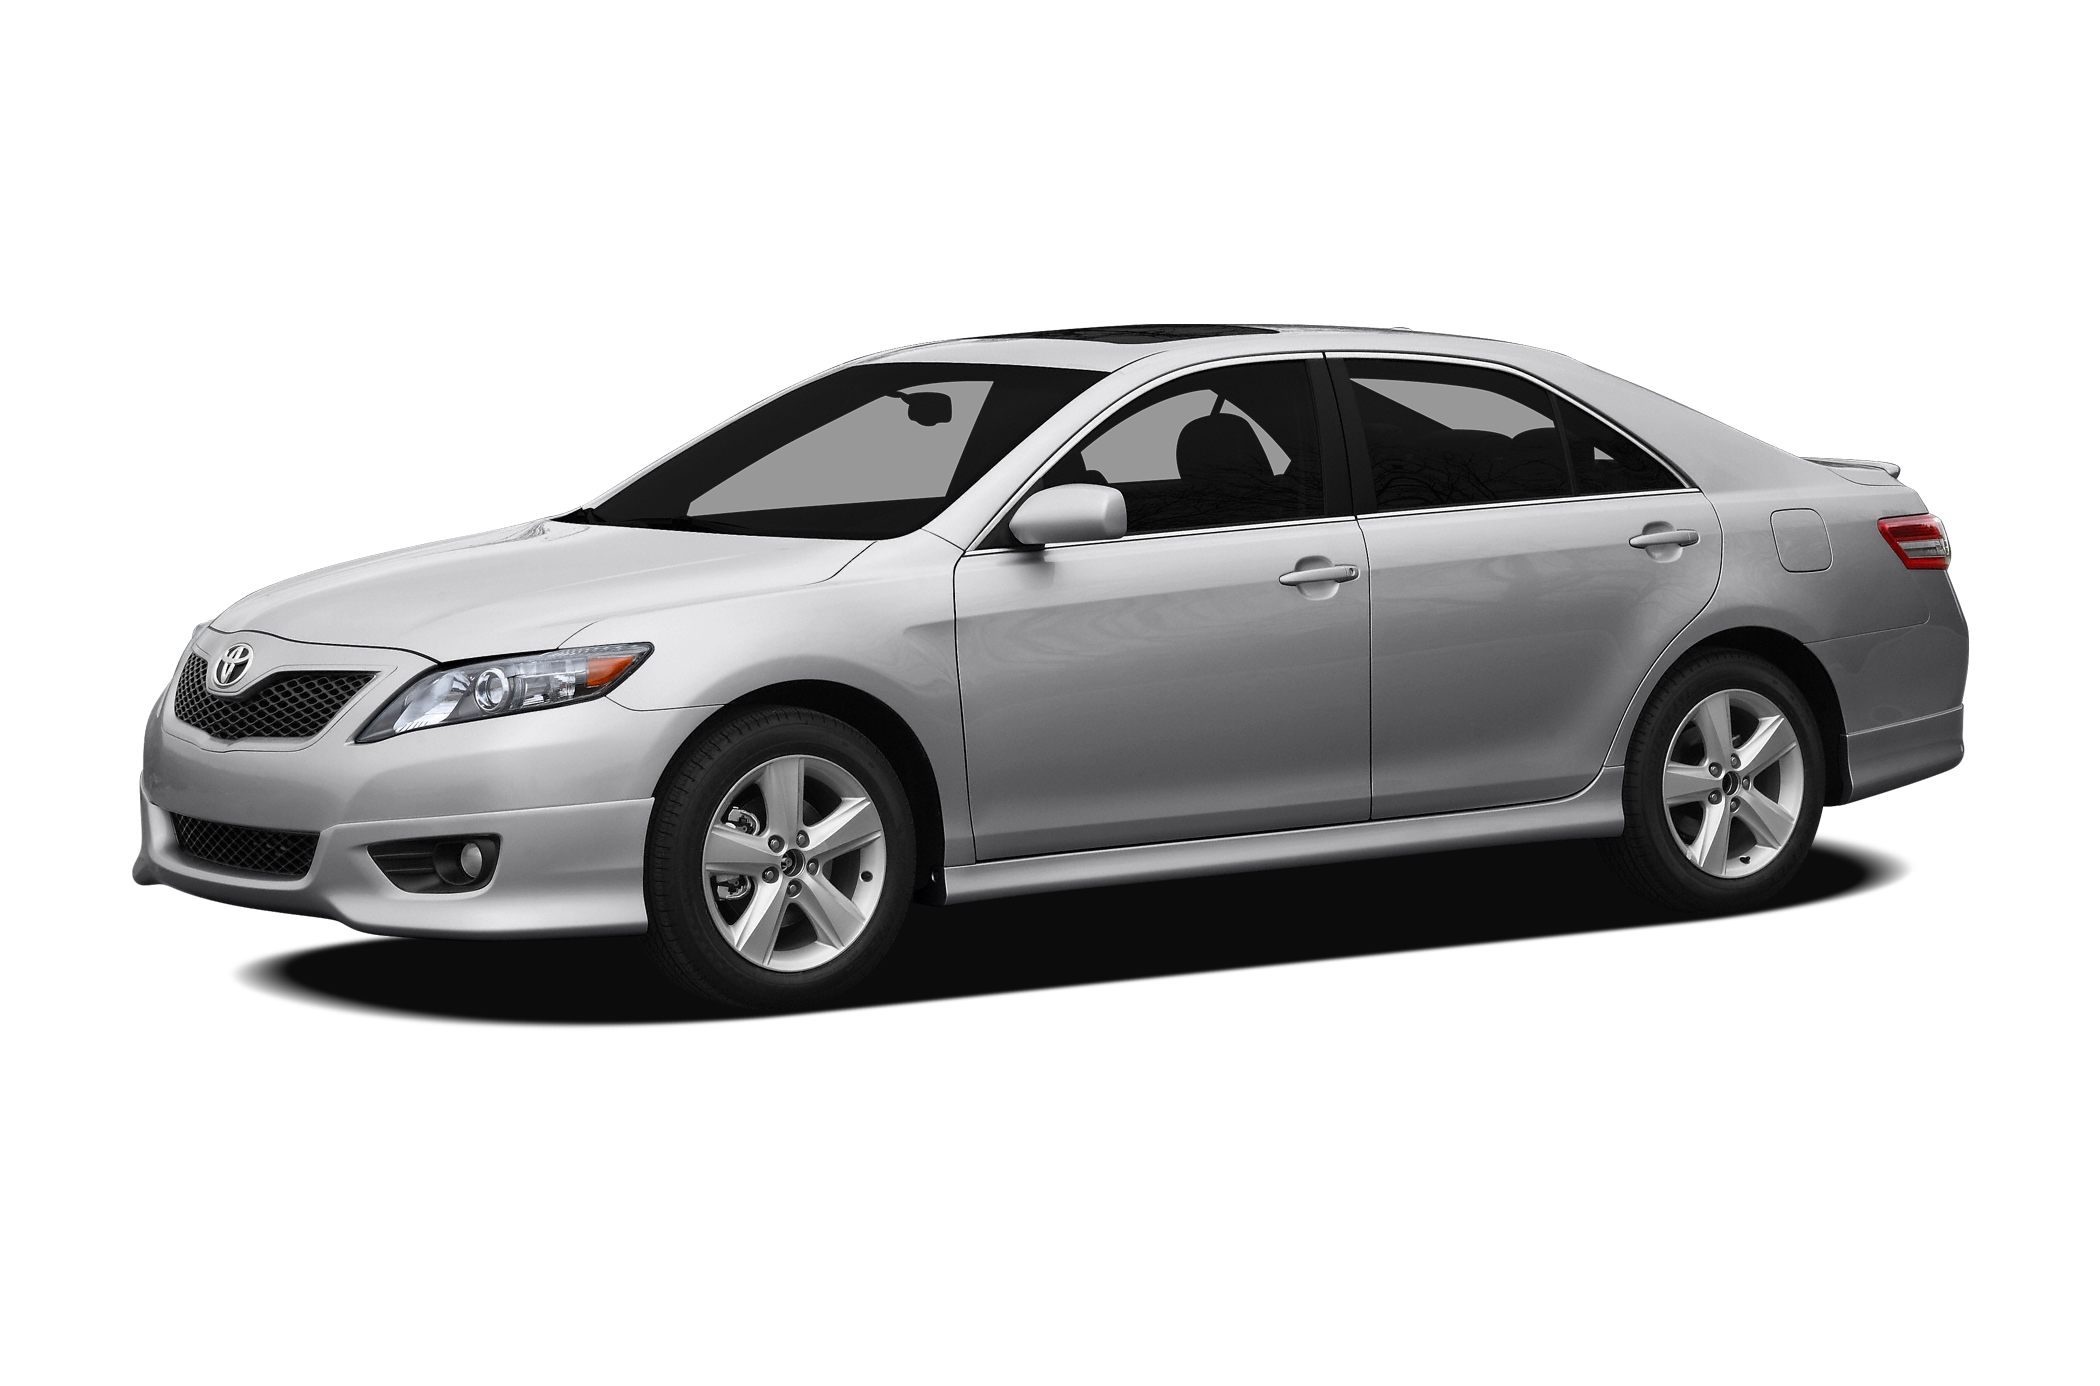 2010 Toyota Camry LE Sedan for sale in Falls Church for $12,950 with 74,689 miles.